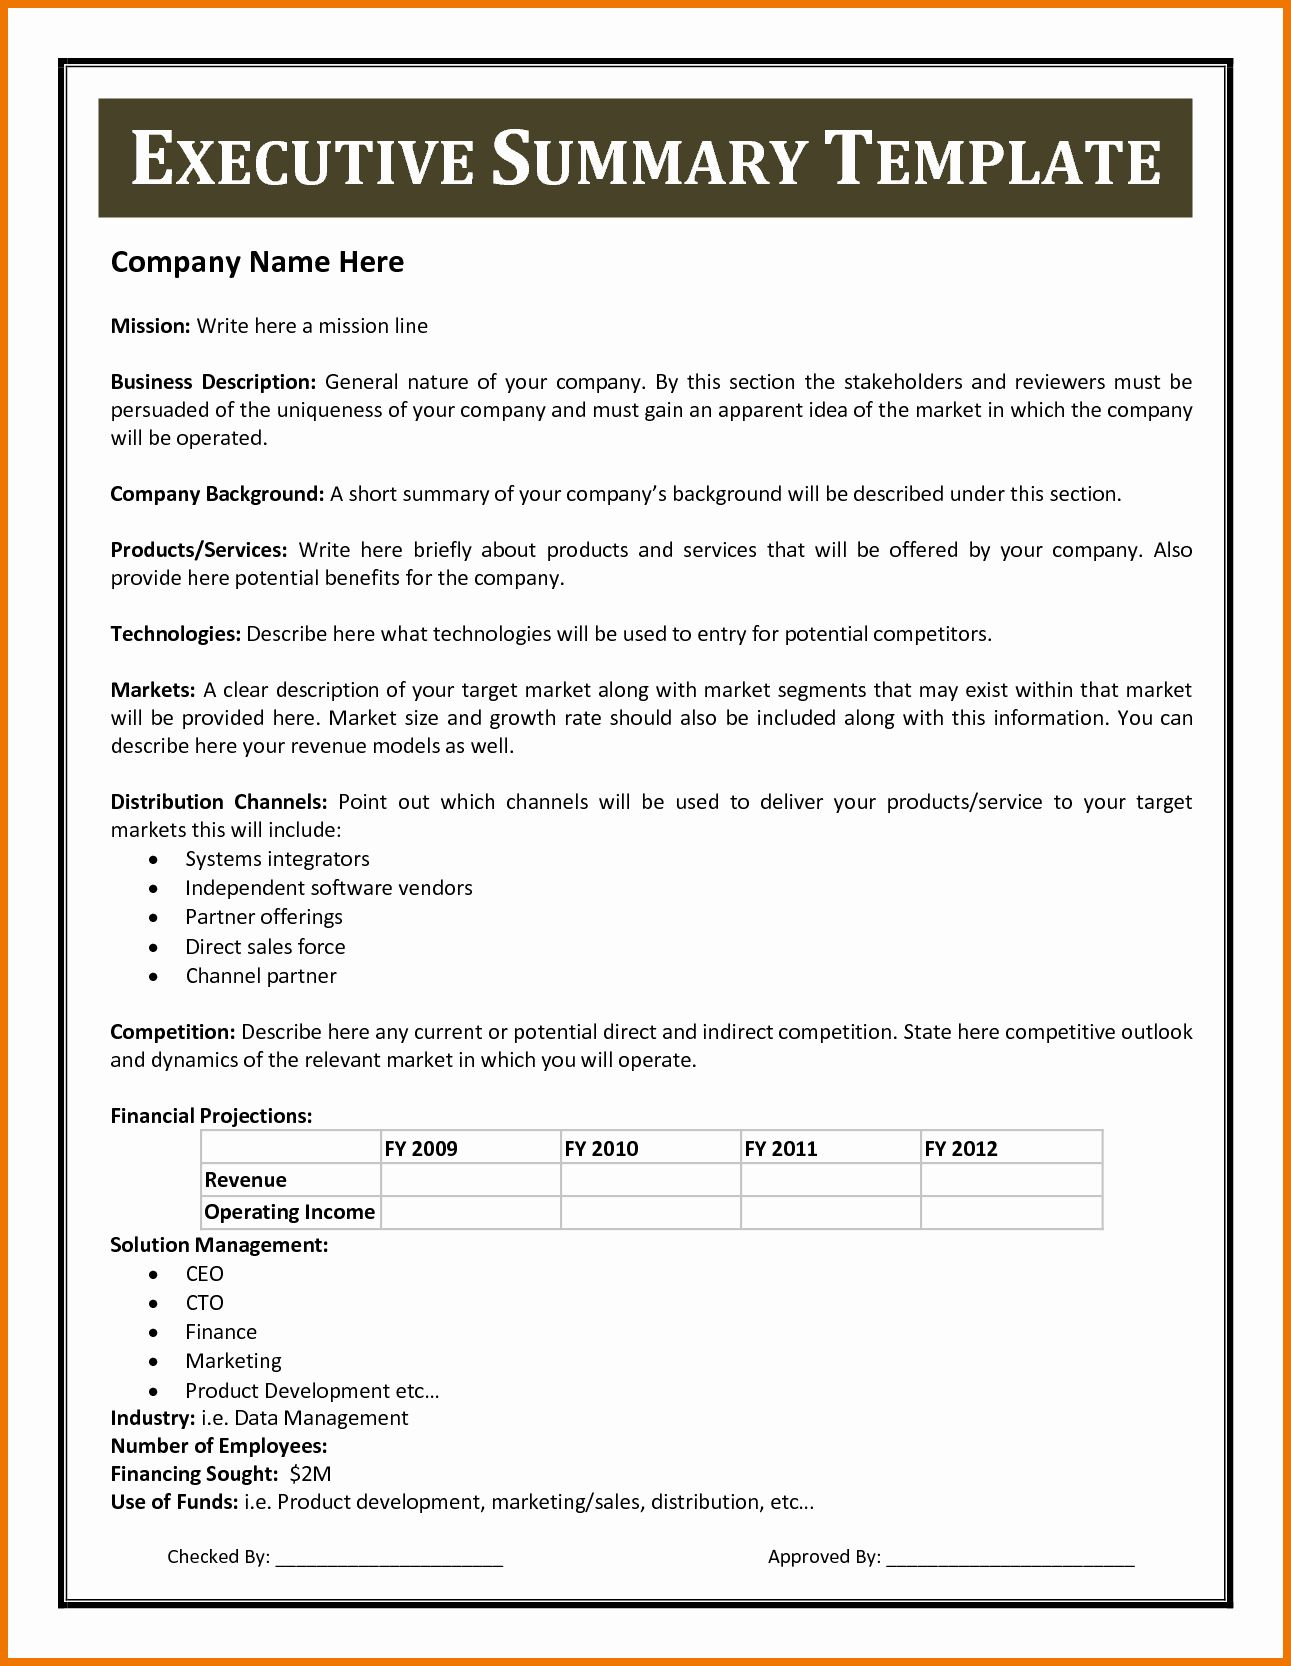 Project Executive Summary Template Word in 2020 (With